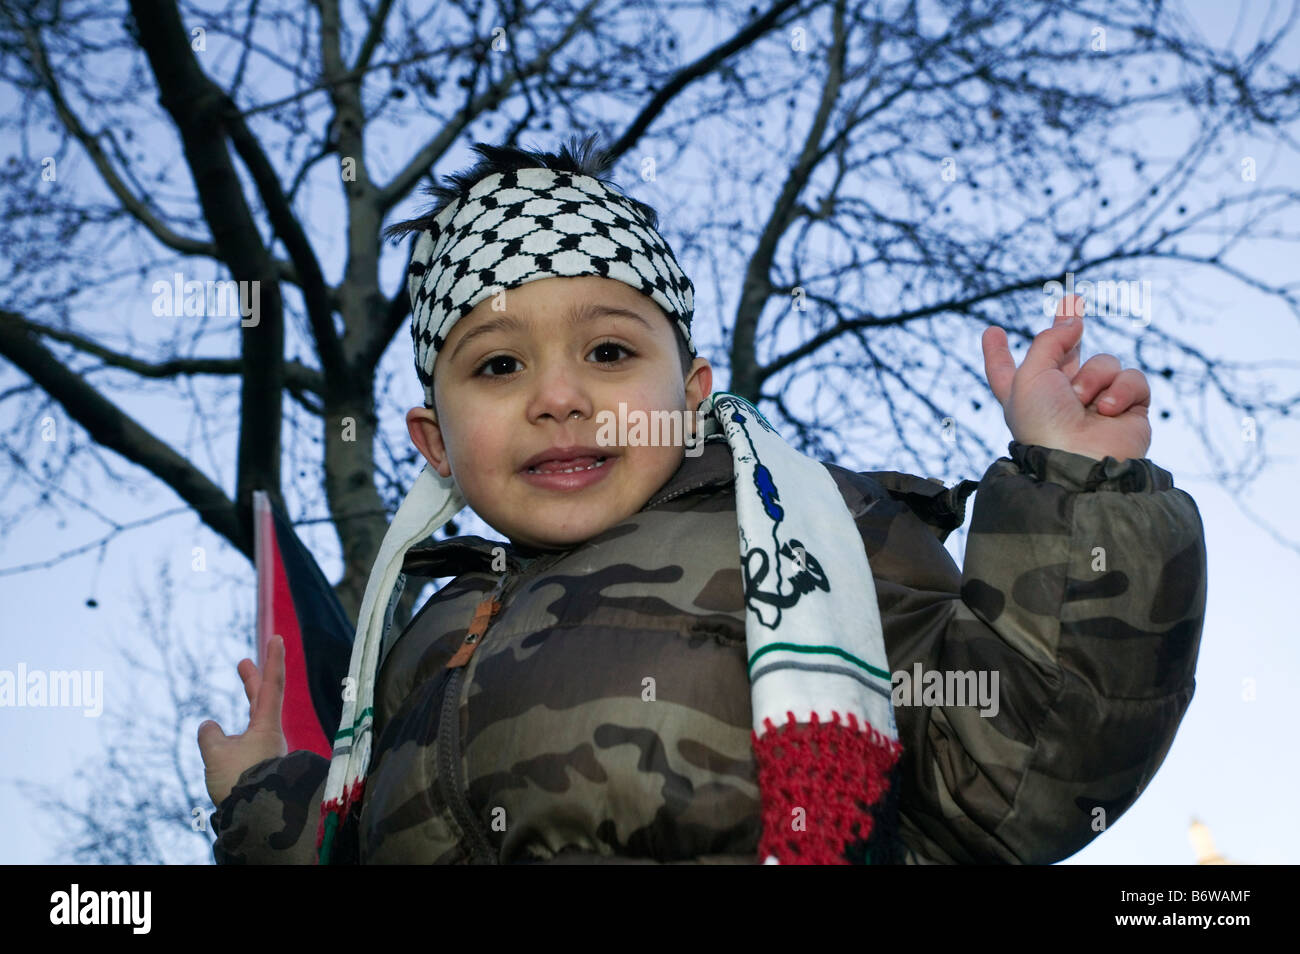 Little Palestinian Boy with Victory Sign at Anti-Israeli Demonstration in London after attacks on Gaza Strip. - Stock Image